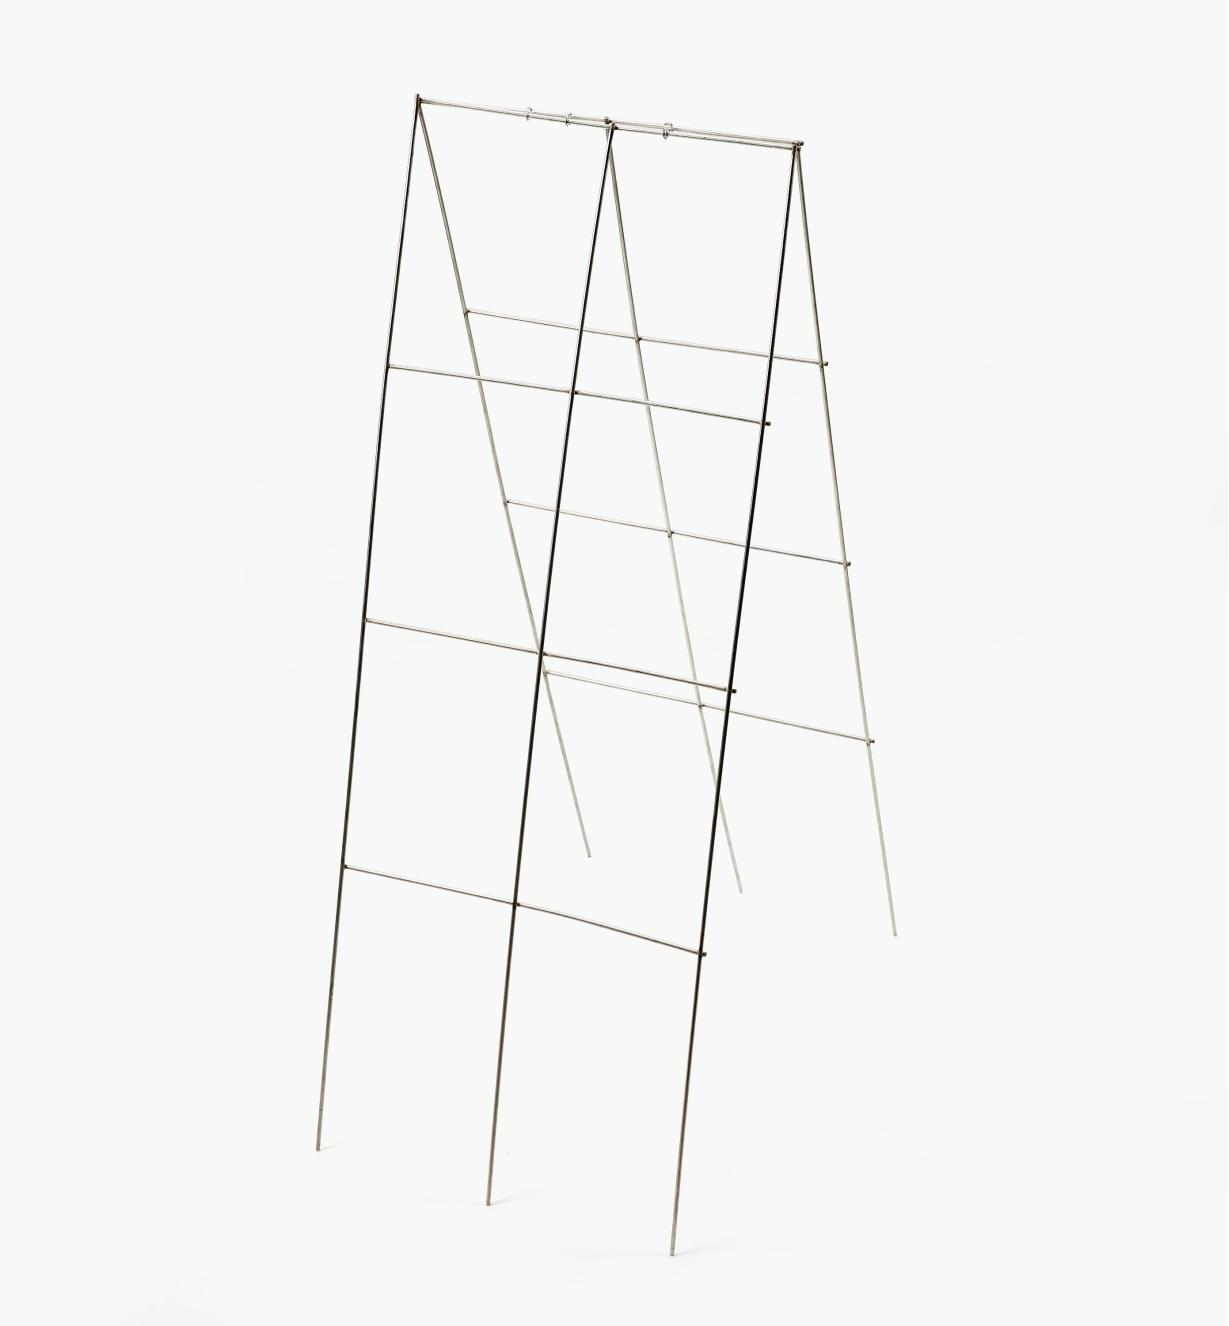 XM112 - Two-Panel Folding Garden Support